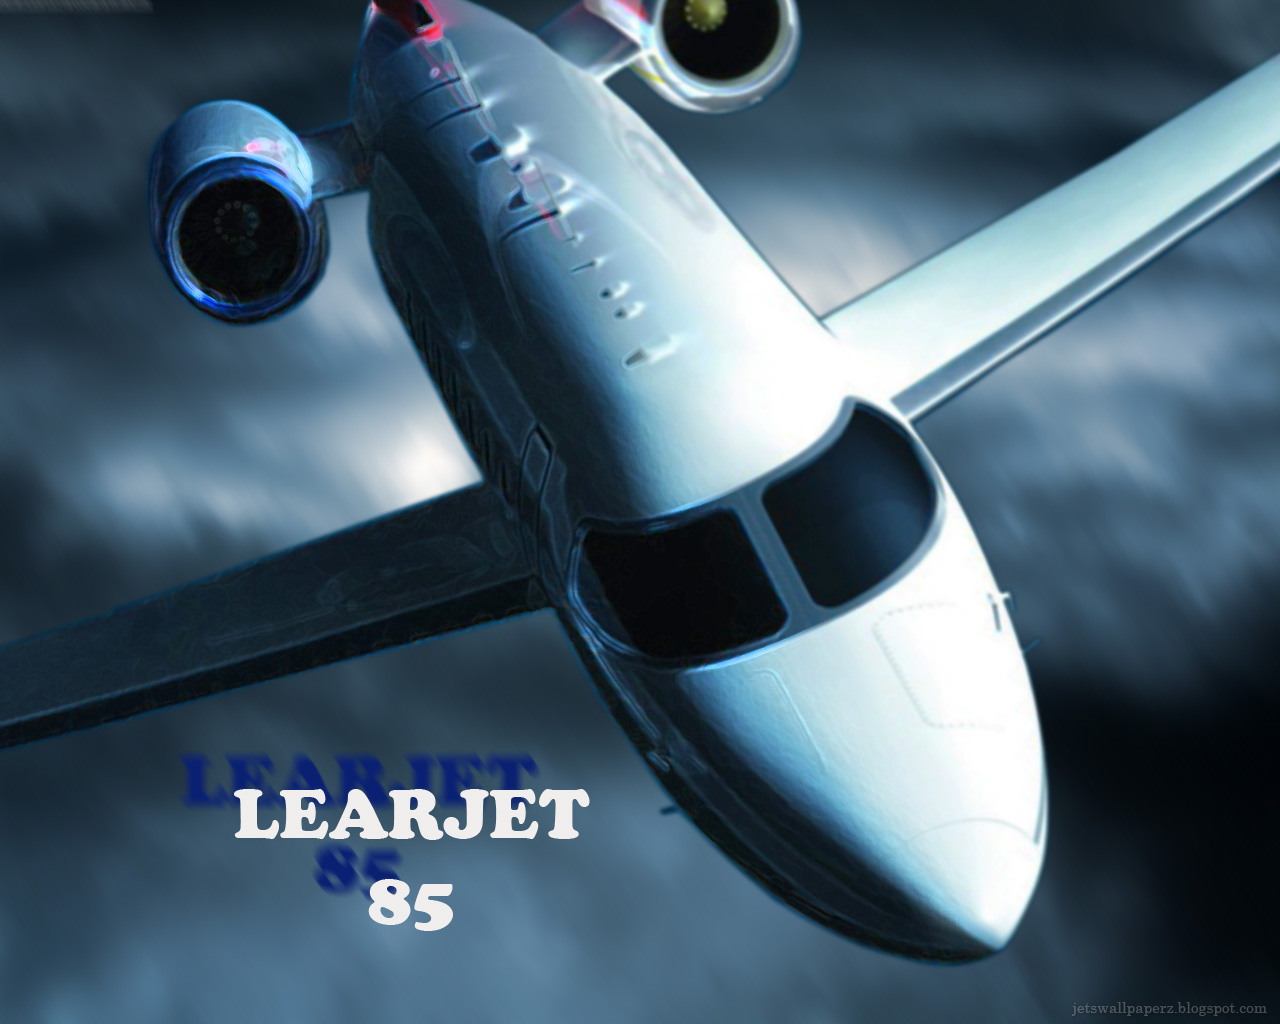 Learjet85 Wallpaper